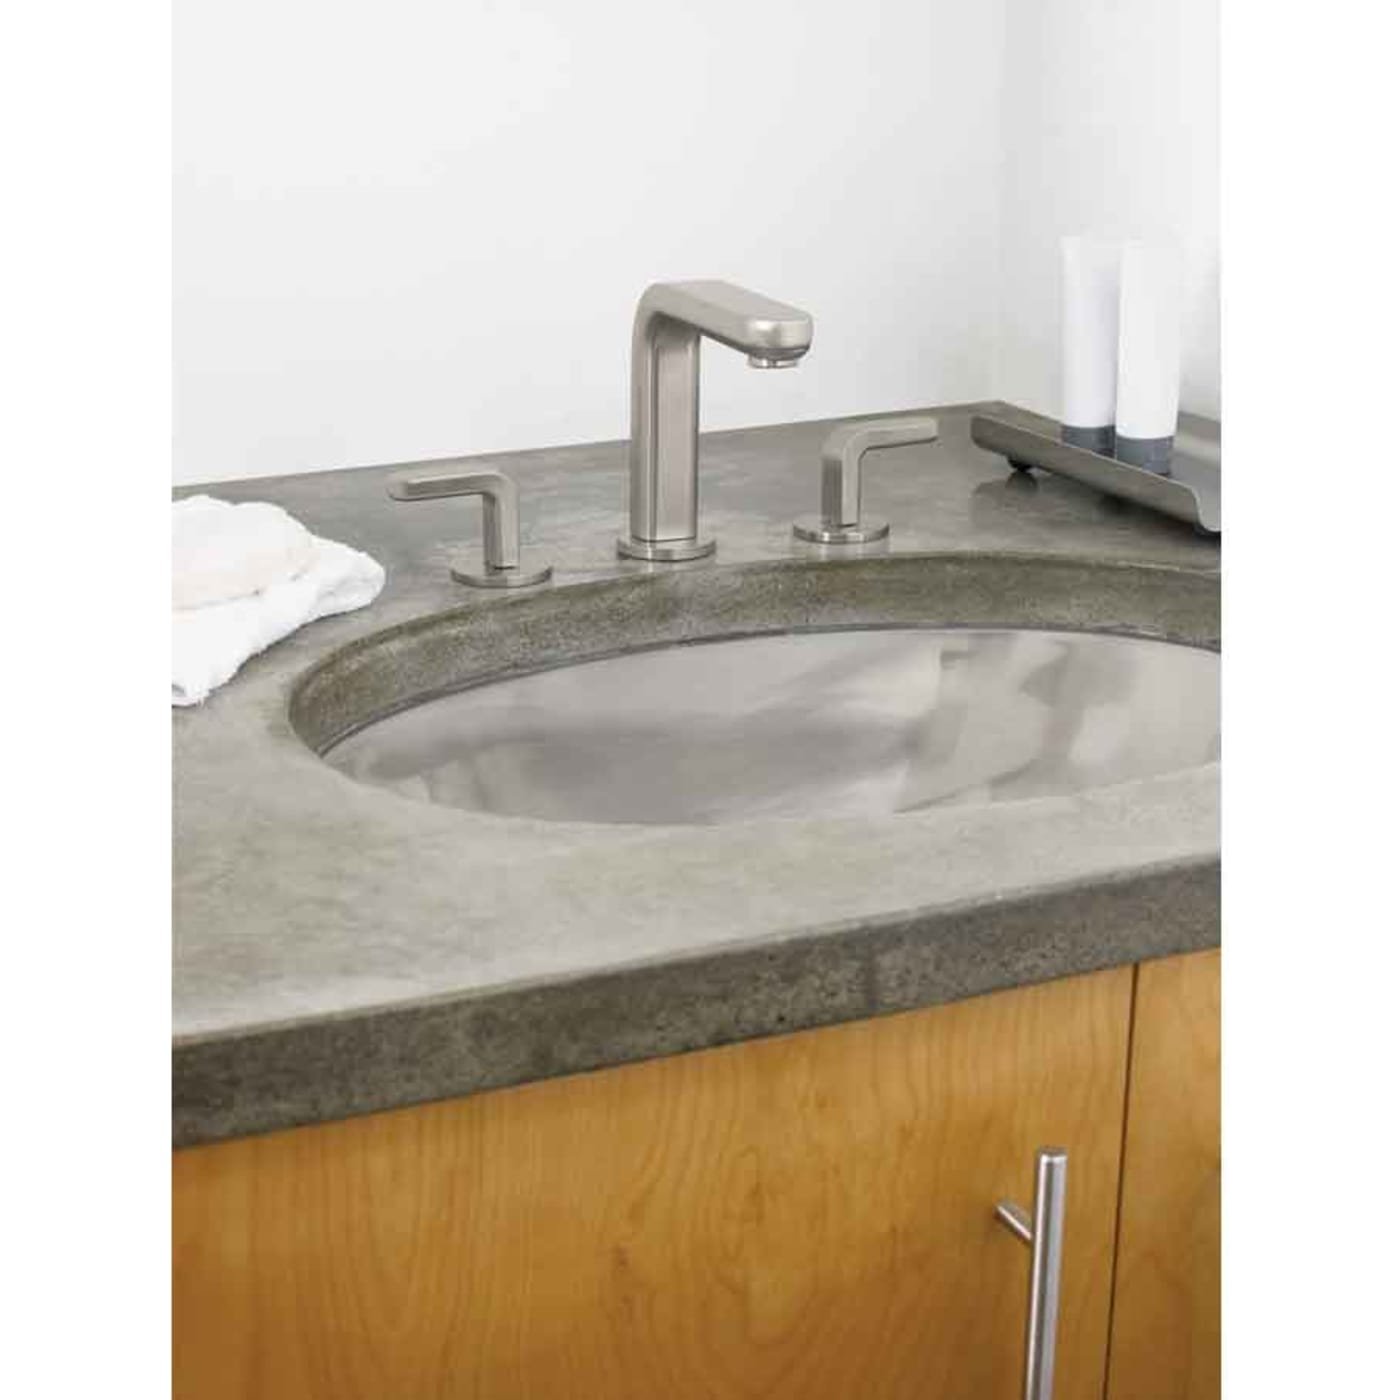 Hansgrohe Metris Widespread Bathroom Faucet 31067821 Brushed Nickel ...